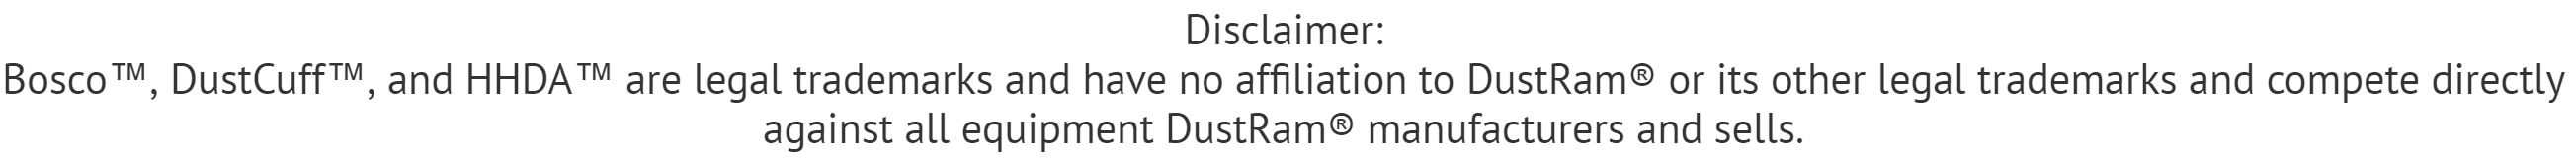 Bosco™, DustCuff™, and HHDA™ are legal trademarks and have no affiliation to DustRam® or its other legal trademarks.